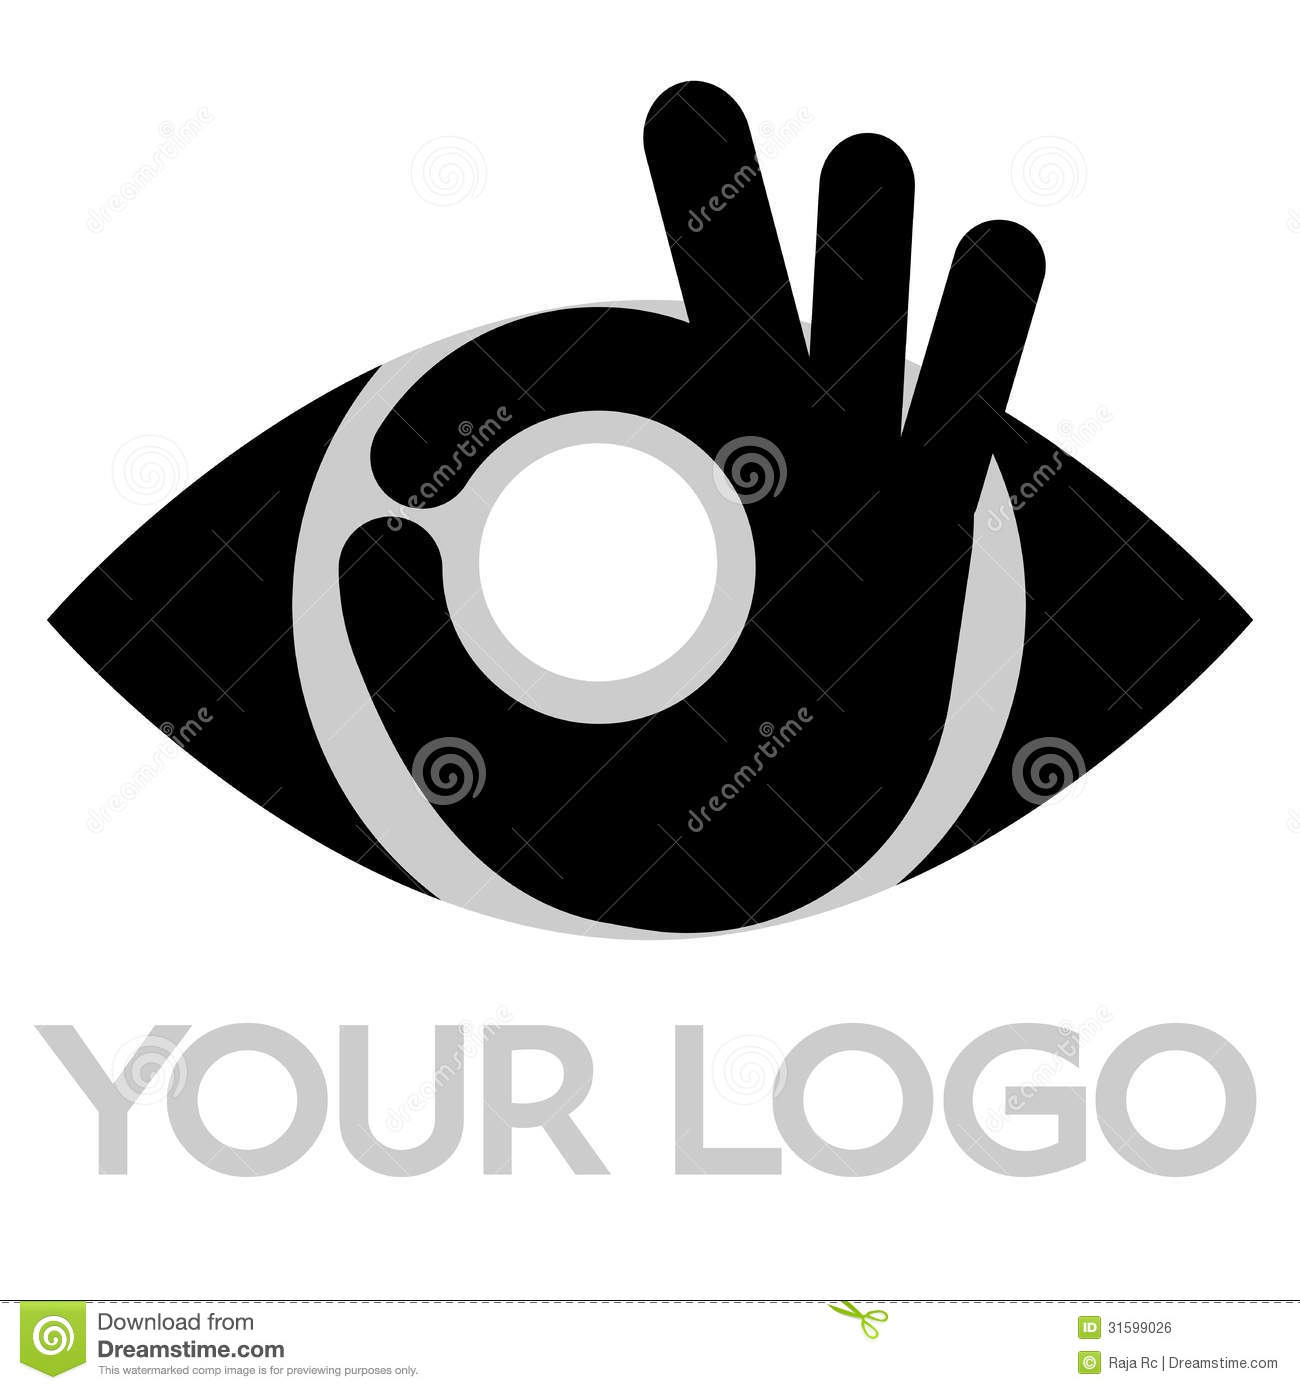 d9a72d22f83 Vector illustration for eye hospital and eye care